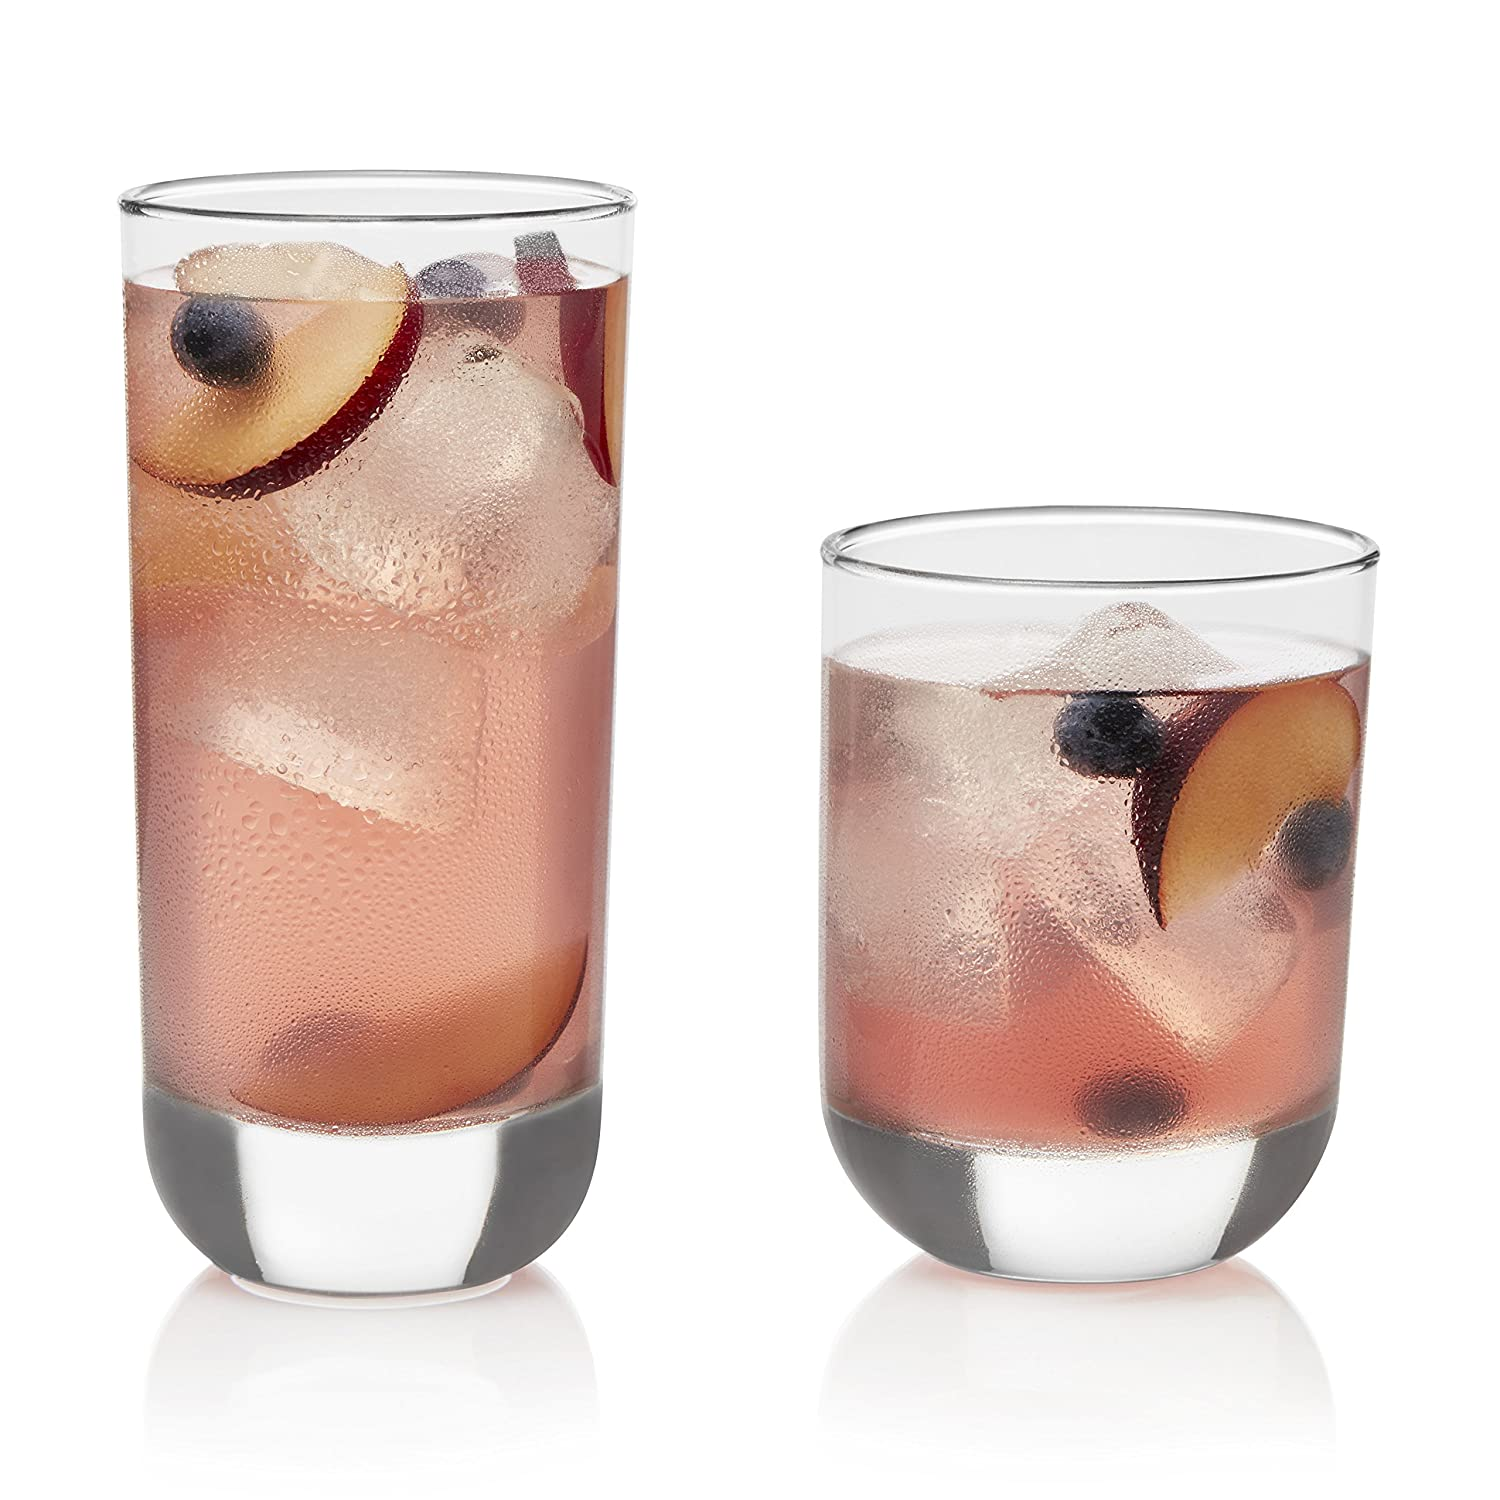 Libbey Polaris Drinking Glasses and Tumblers, Set of 16 31631